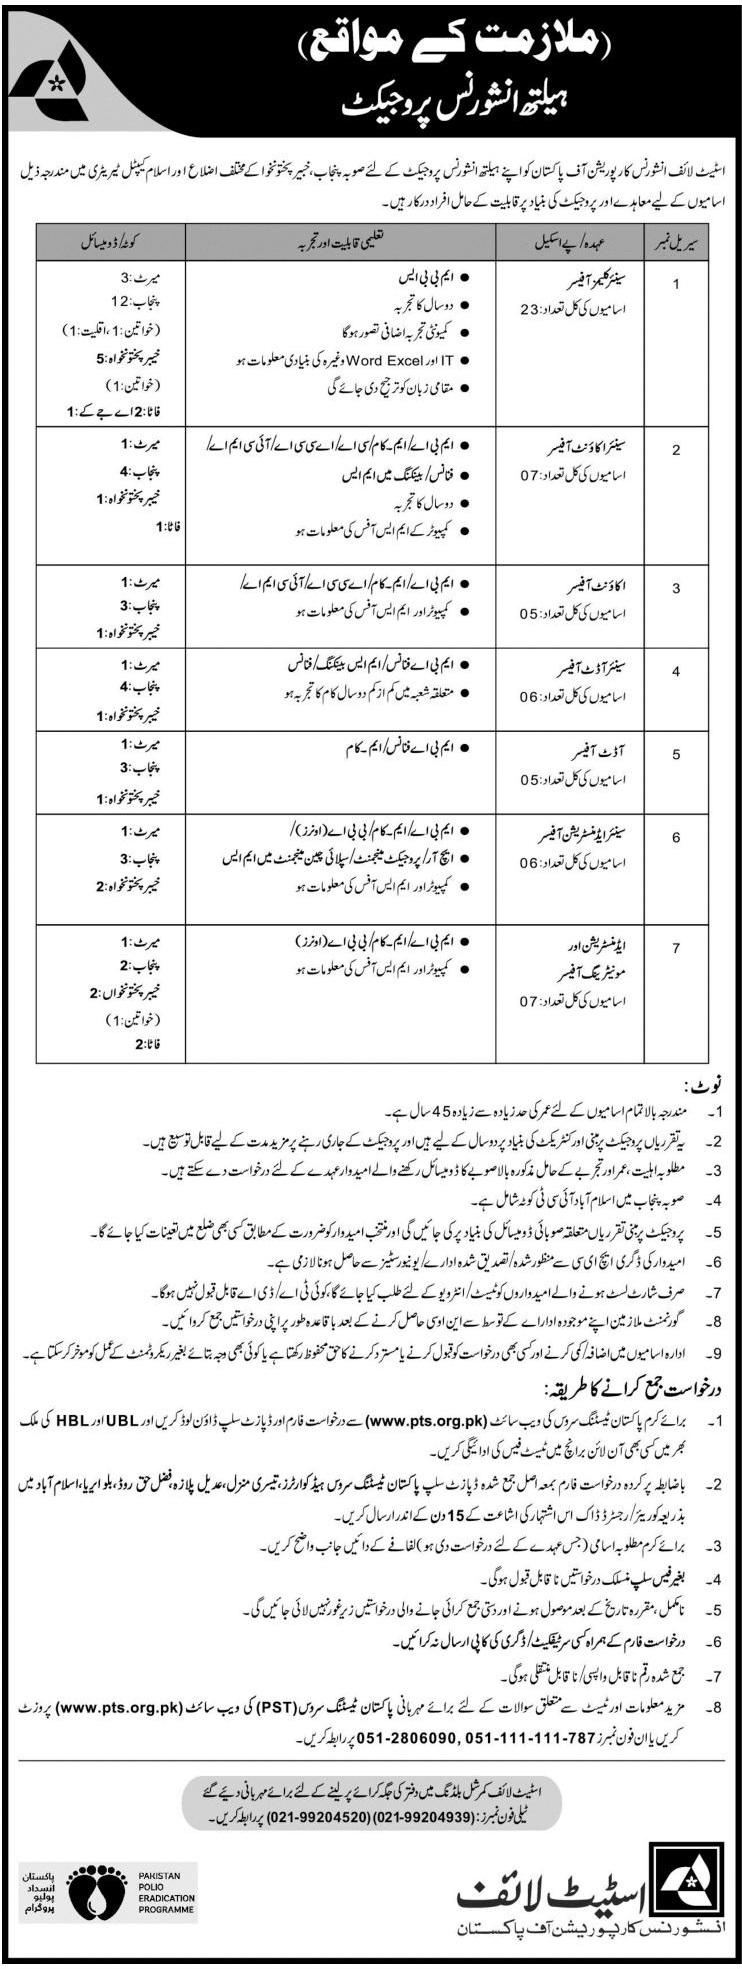 State Life Insurance Corporation of Pakistan PTS Jobs 2020 Application Form